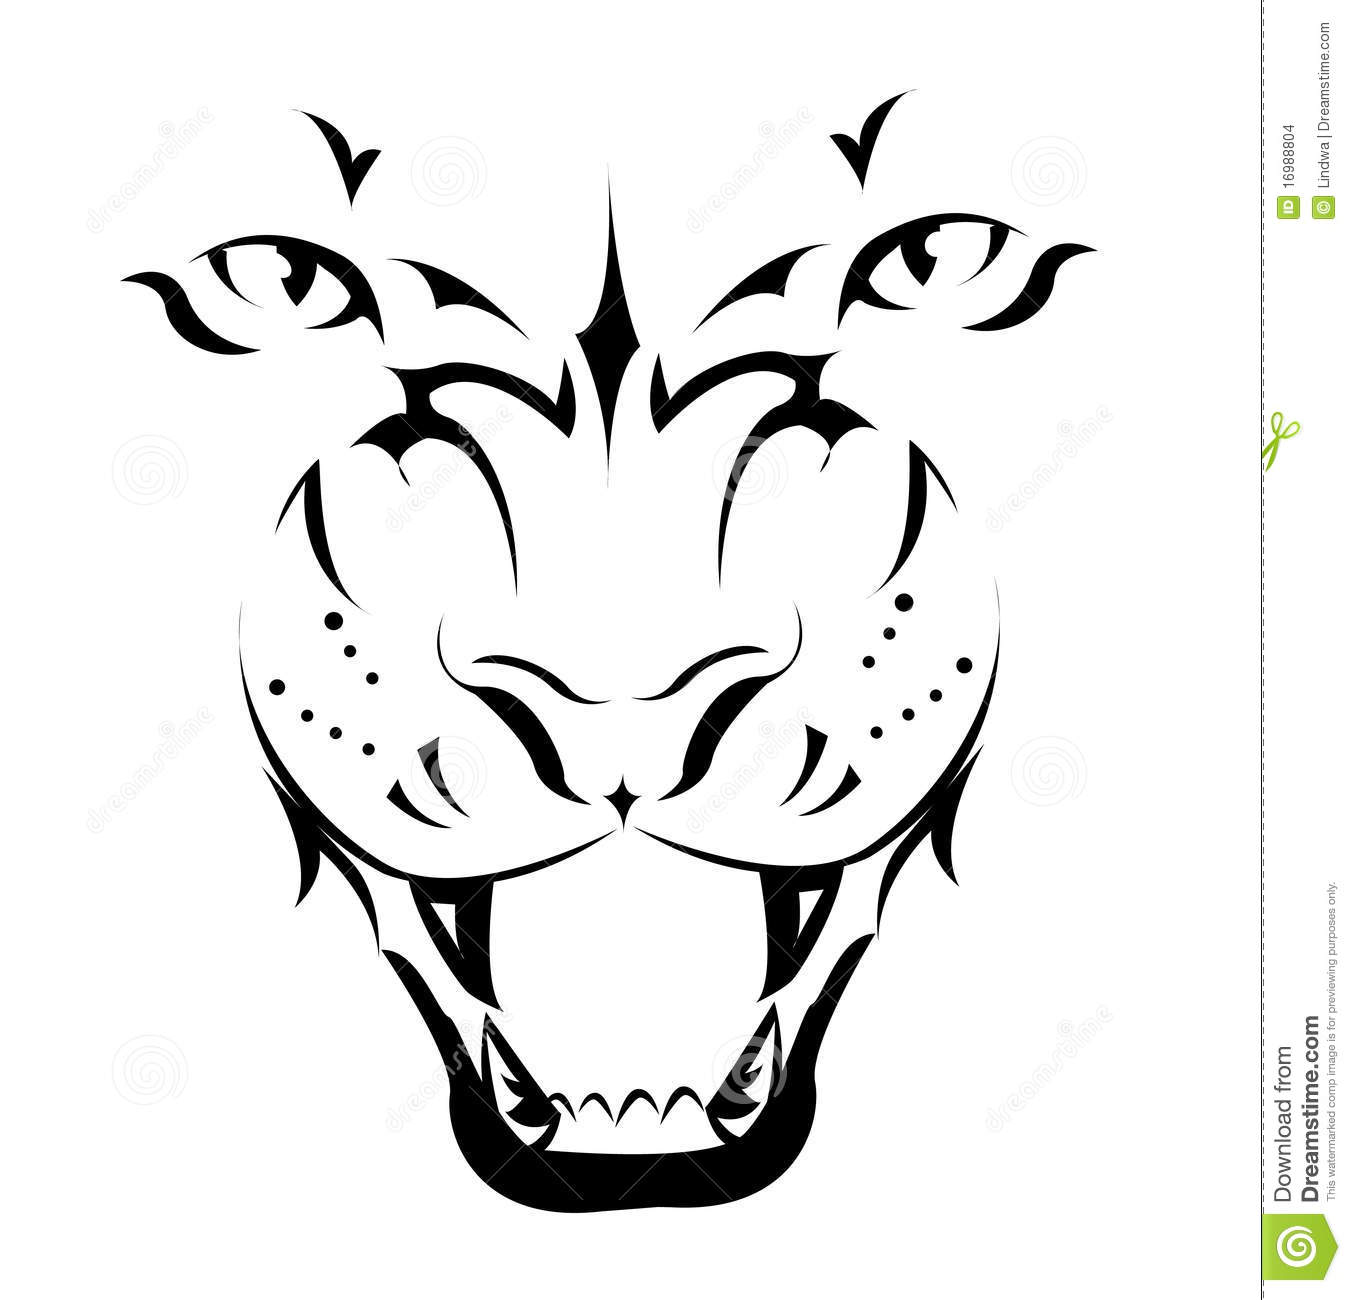 cat 6 b with Images Stock Tigre Tatouage Image16988804 on Anatomy Ii Reproductive Anatomy Of Ruminant Pig 1750900 as well Repasando Los Numeros 1 2 3 furthermore How To Draw A Tiger Tank also Pose Steps 382027324 furthermore Disegni biciclette.